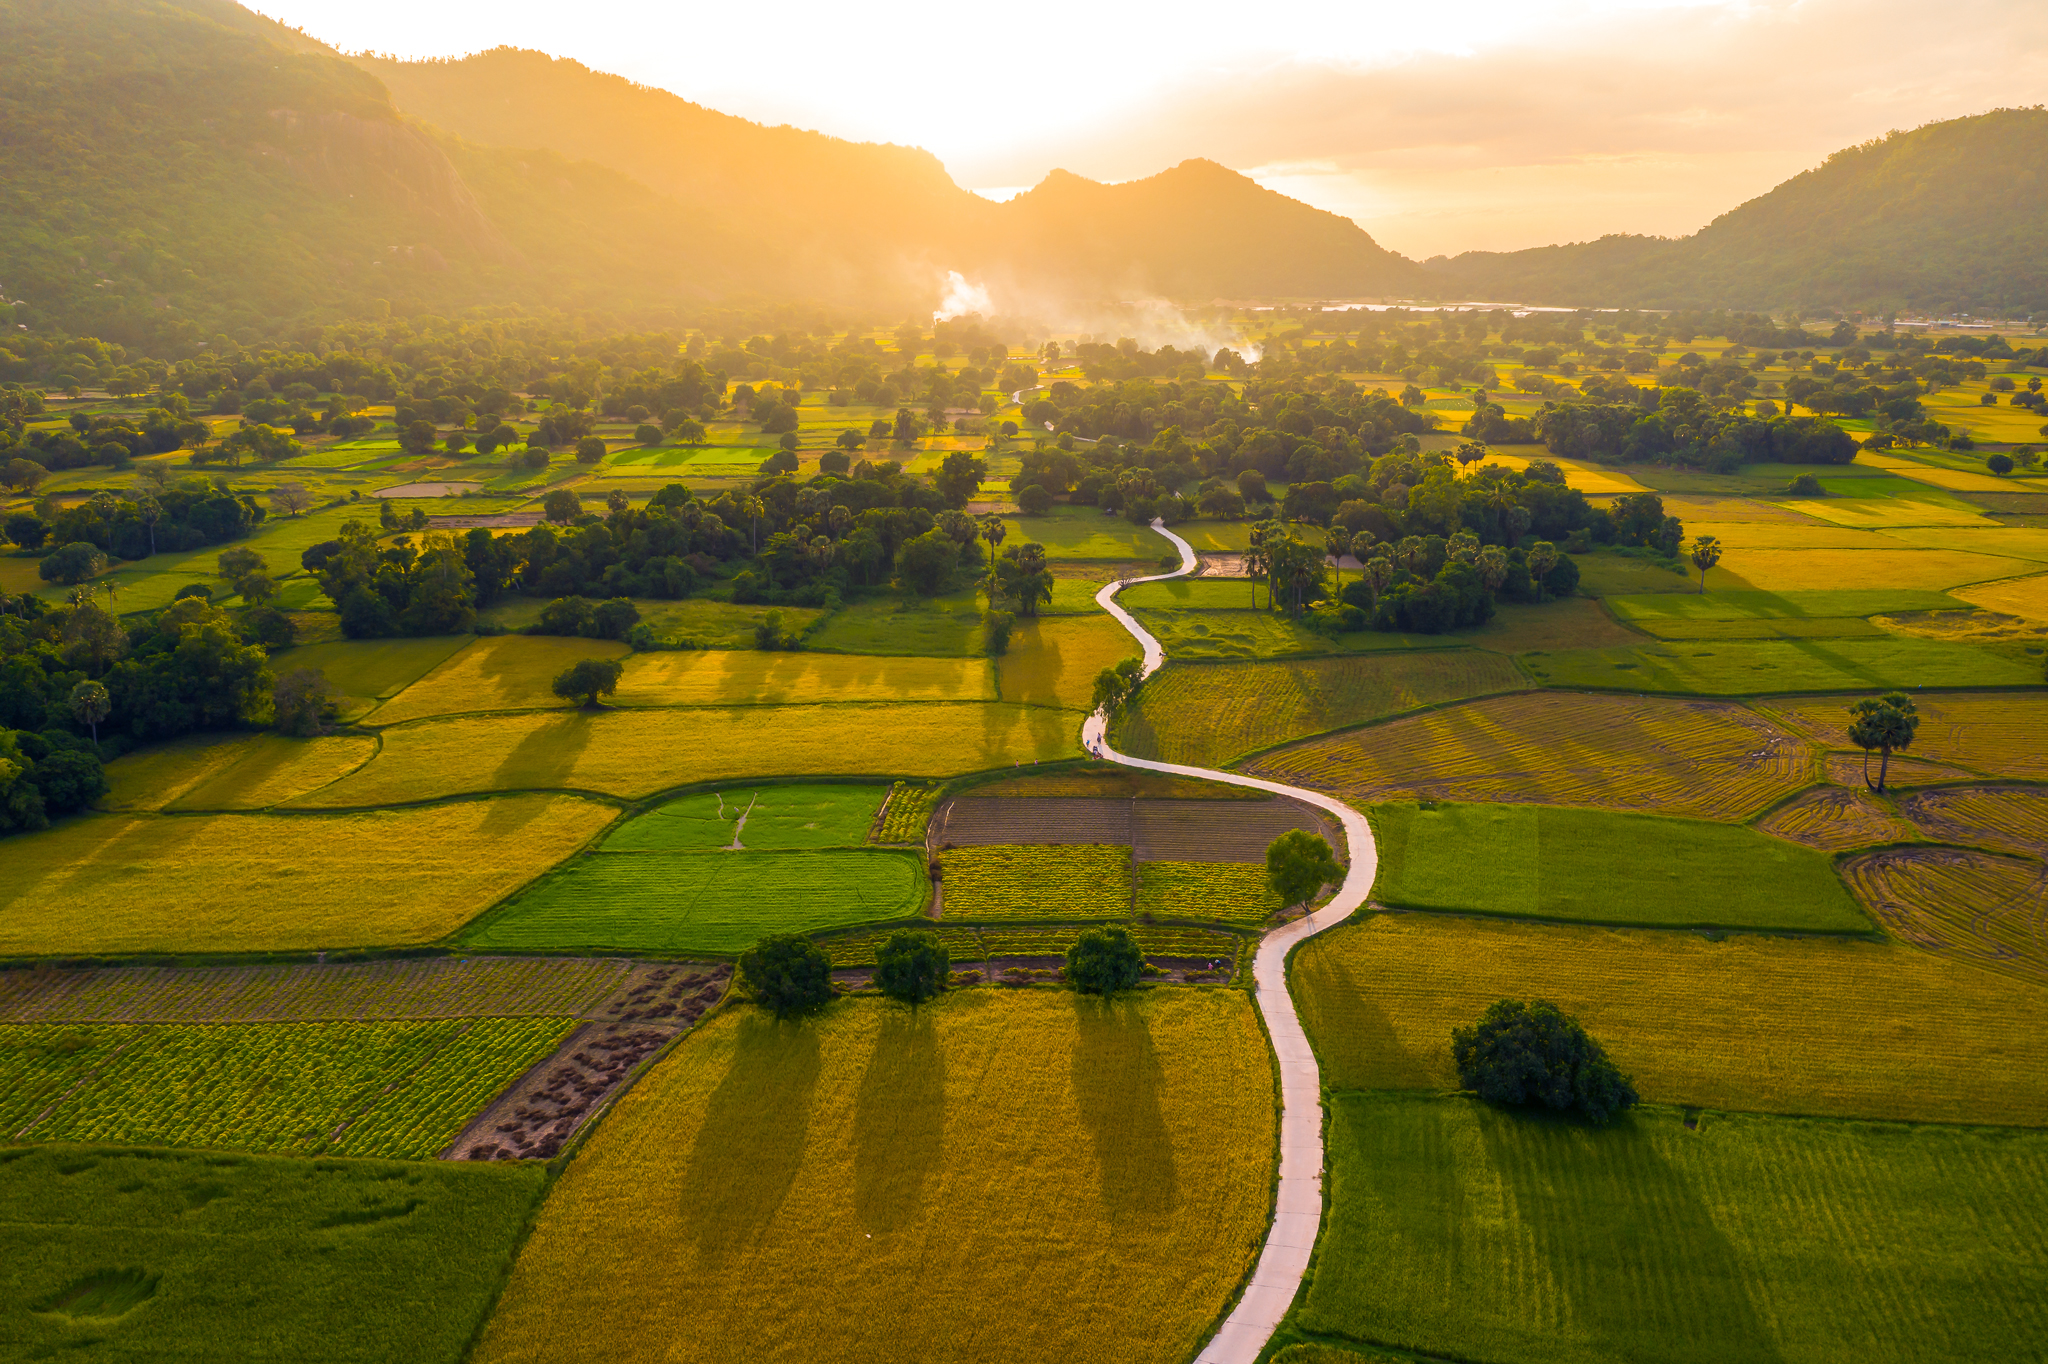 A photo shows Ta Pa paddy rice fields in the Mekong Delta province of An Giang